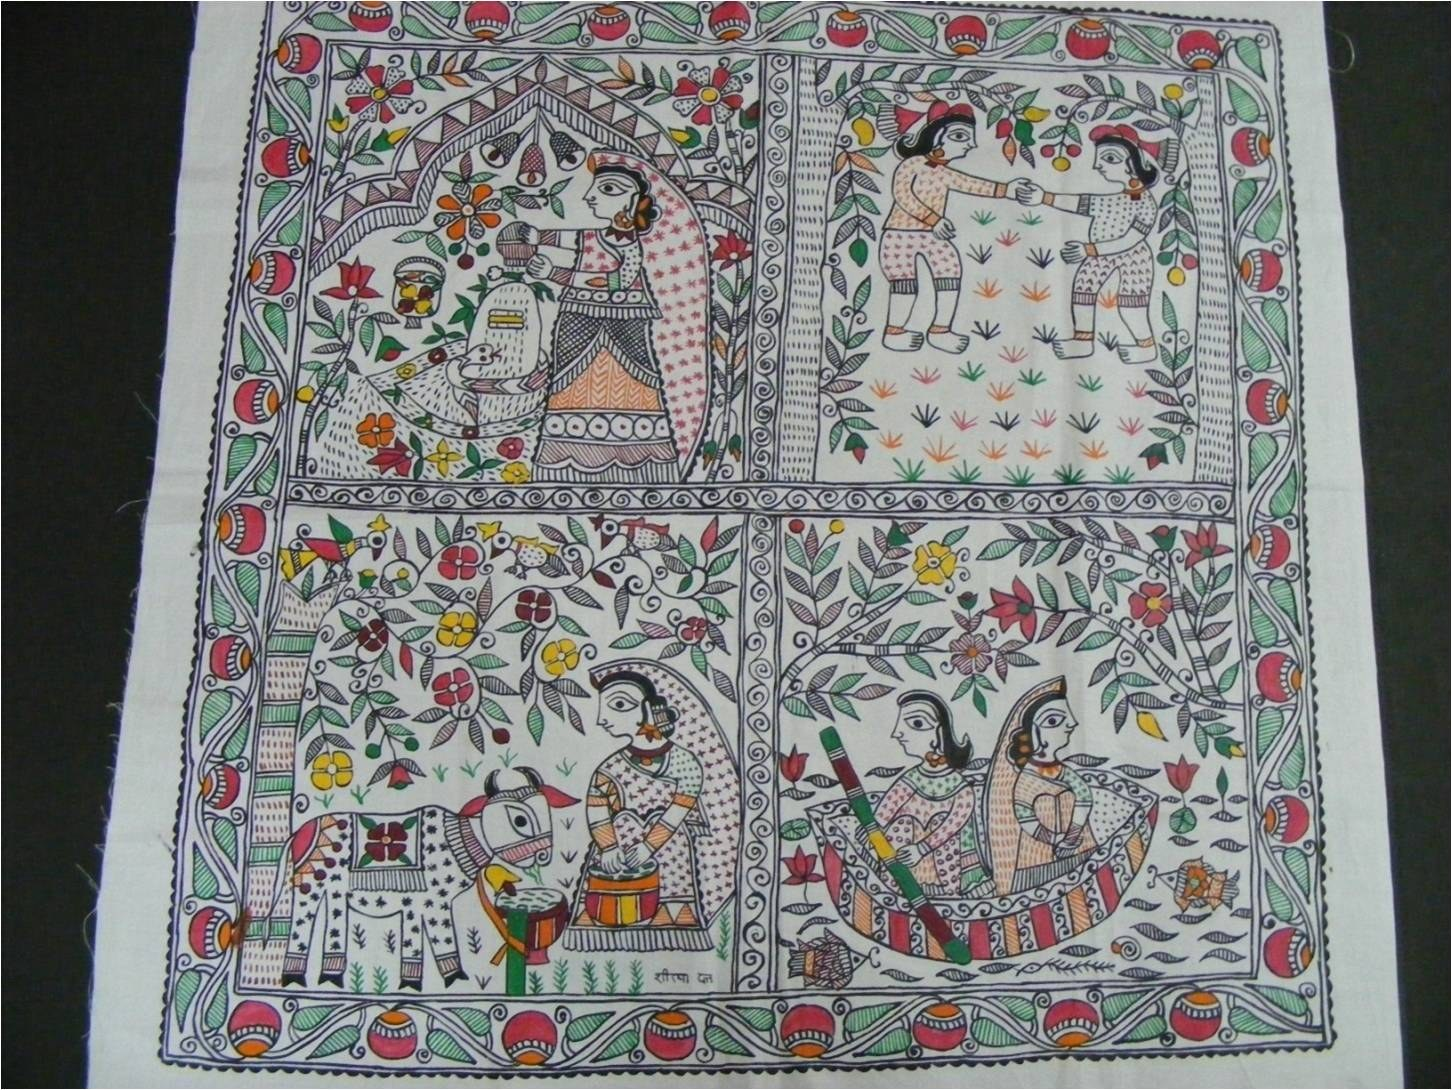 Madhubani Painting on Fiber